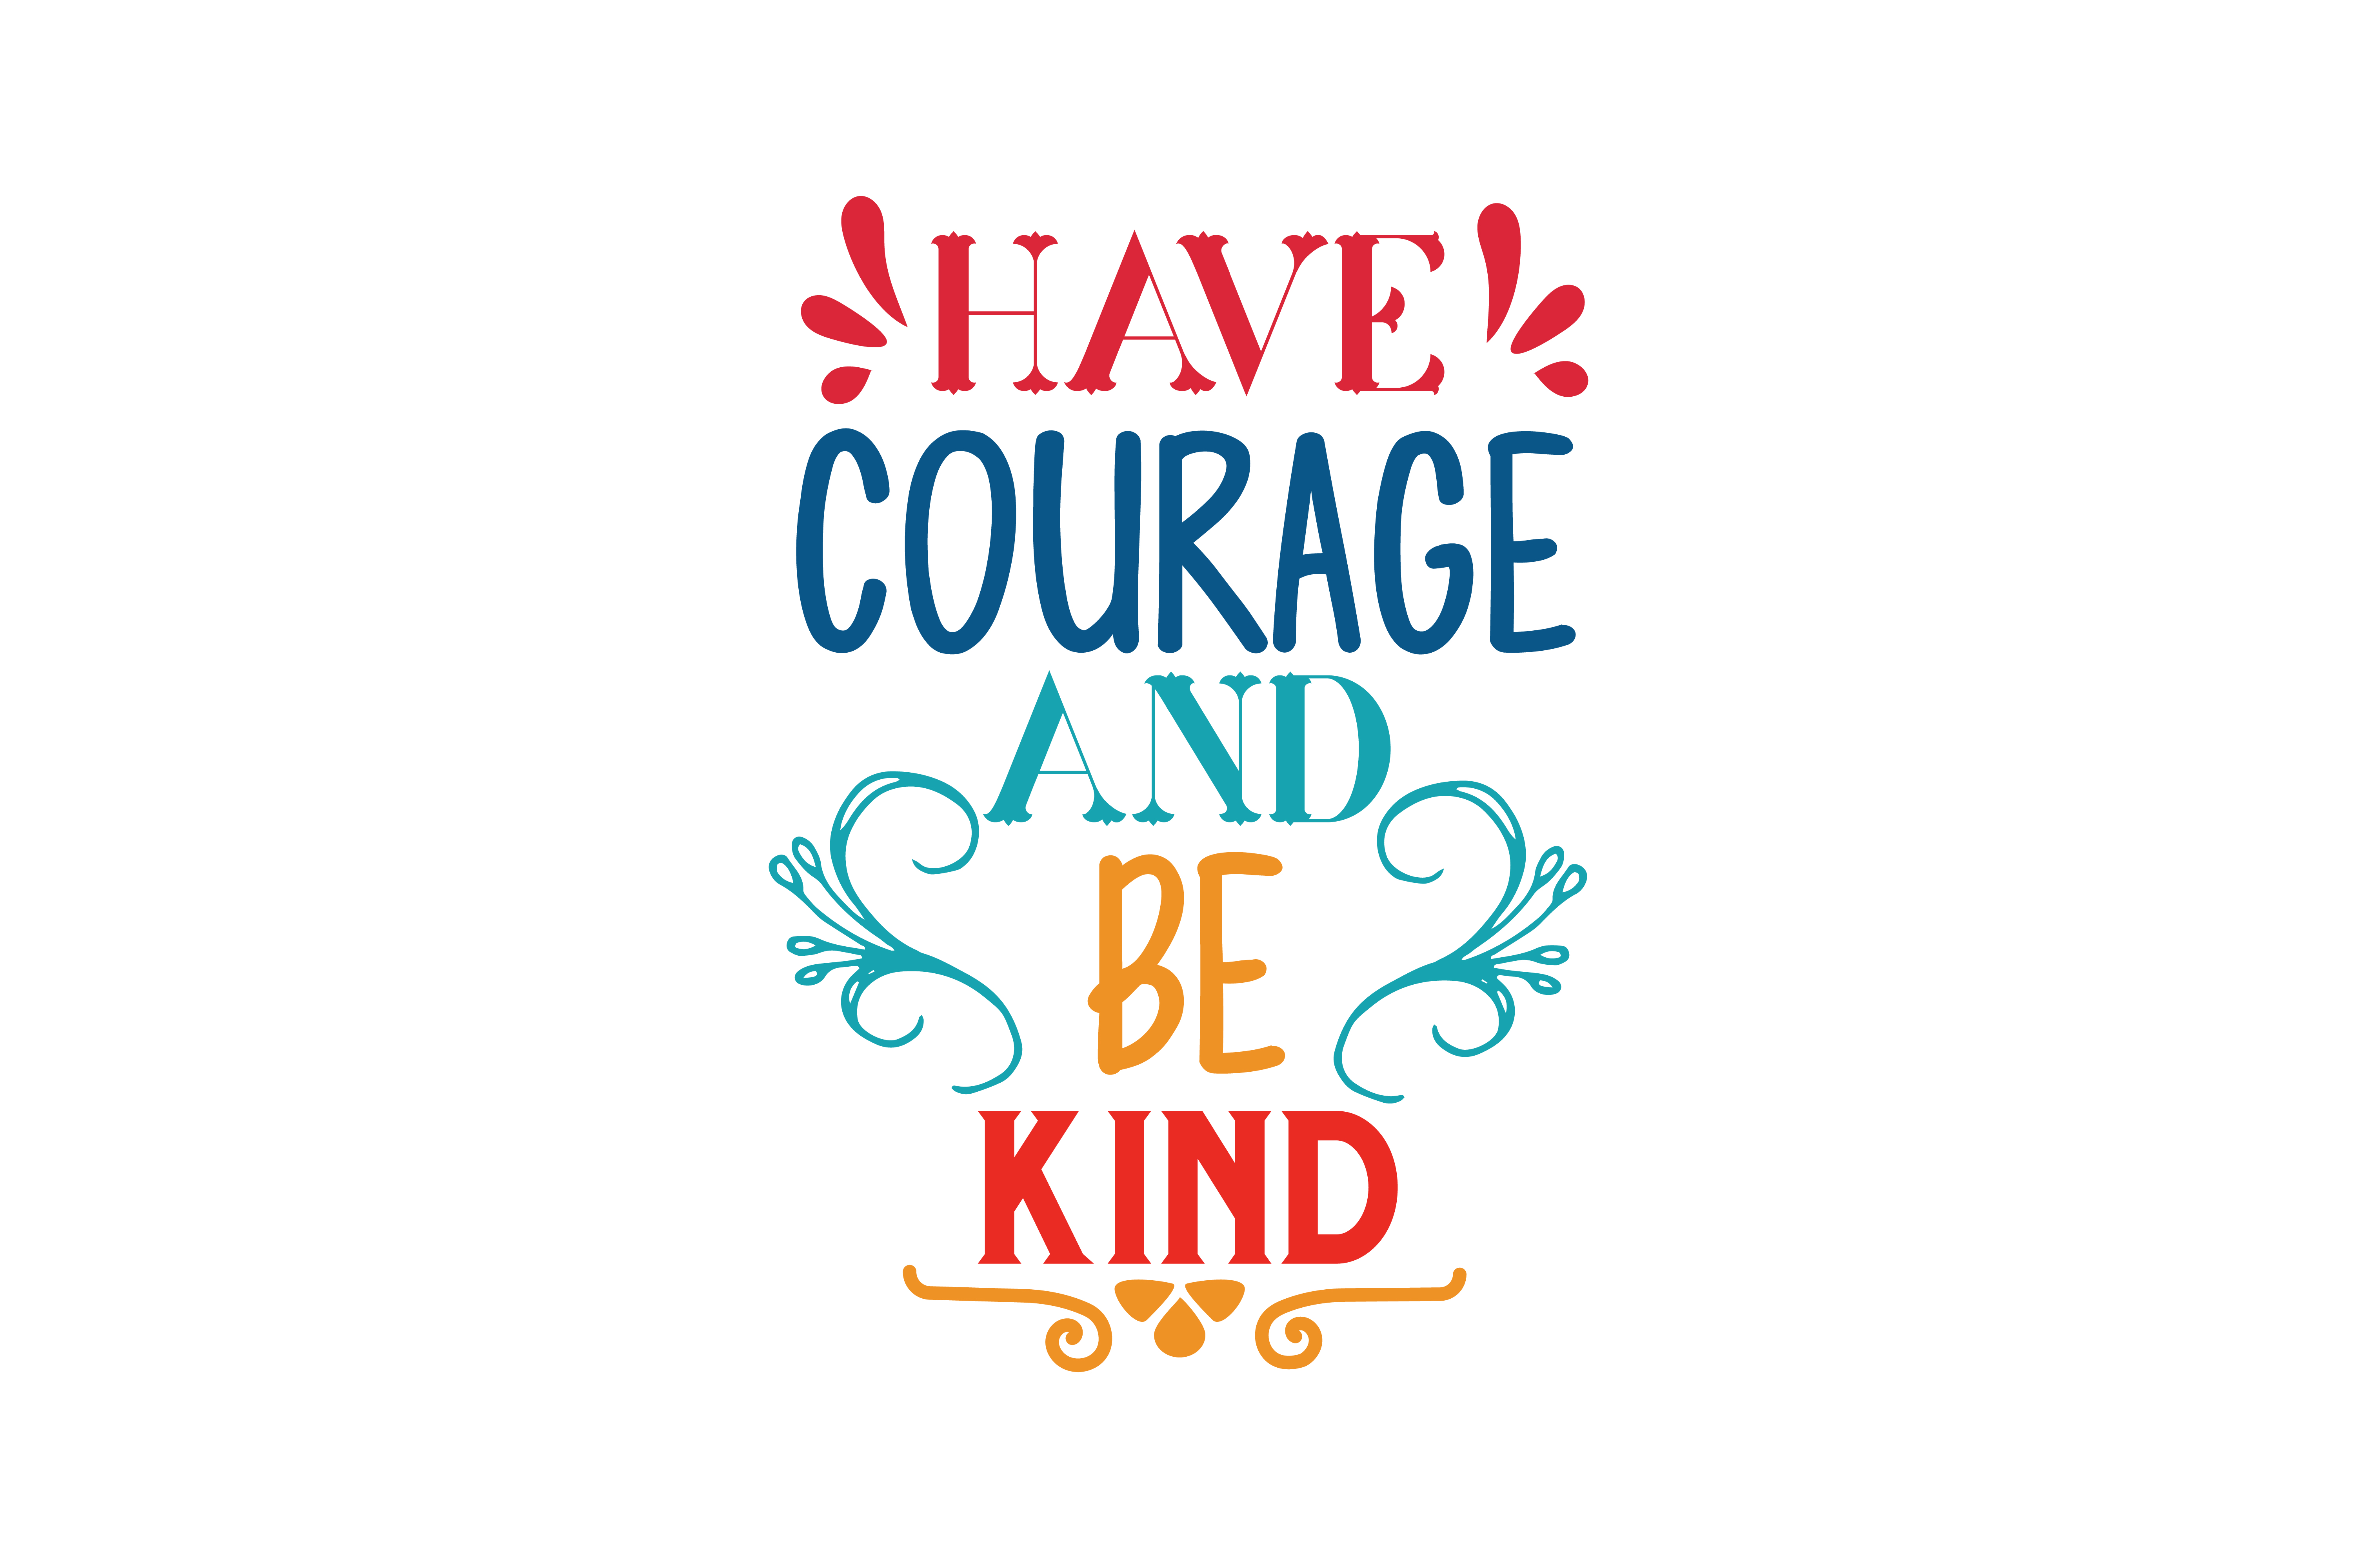 Download Free Have Courage And Be Kind Svg Cut Quote Graphic By Thelucky for Cricut Explore, Silhouette and other cutting machines.